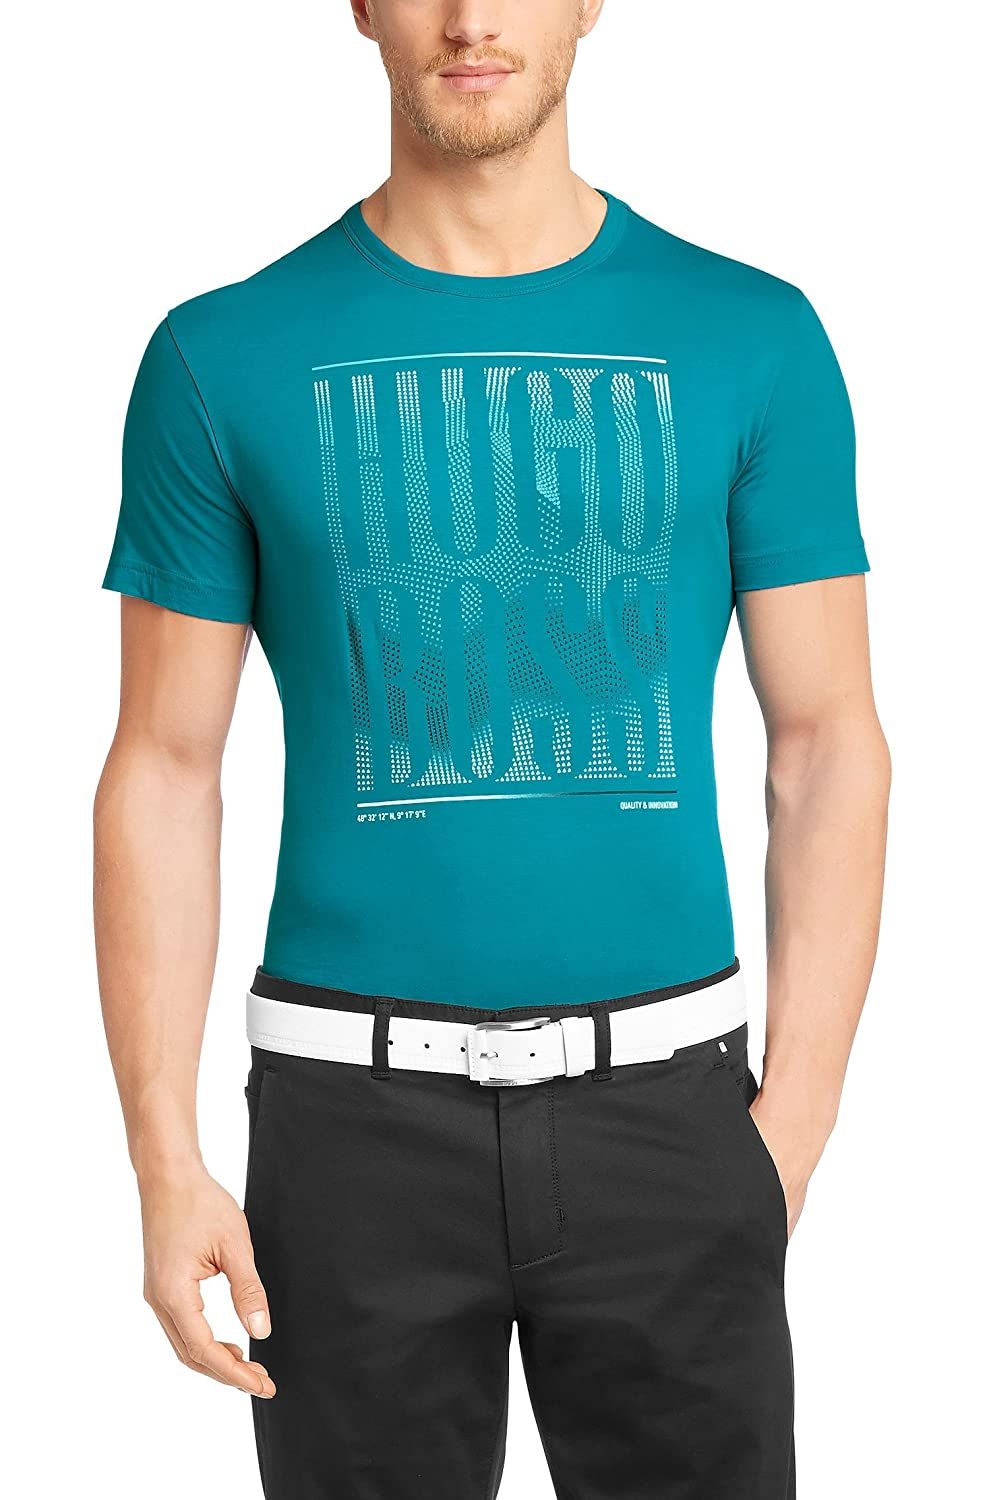 7e7219fd935d Amazon.com  Hugo Boss Men s Short Sleeve Cotton T-Shirt  Tee 12  -Teal   Clothing